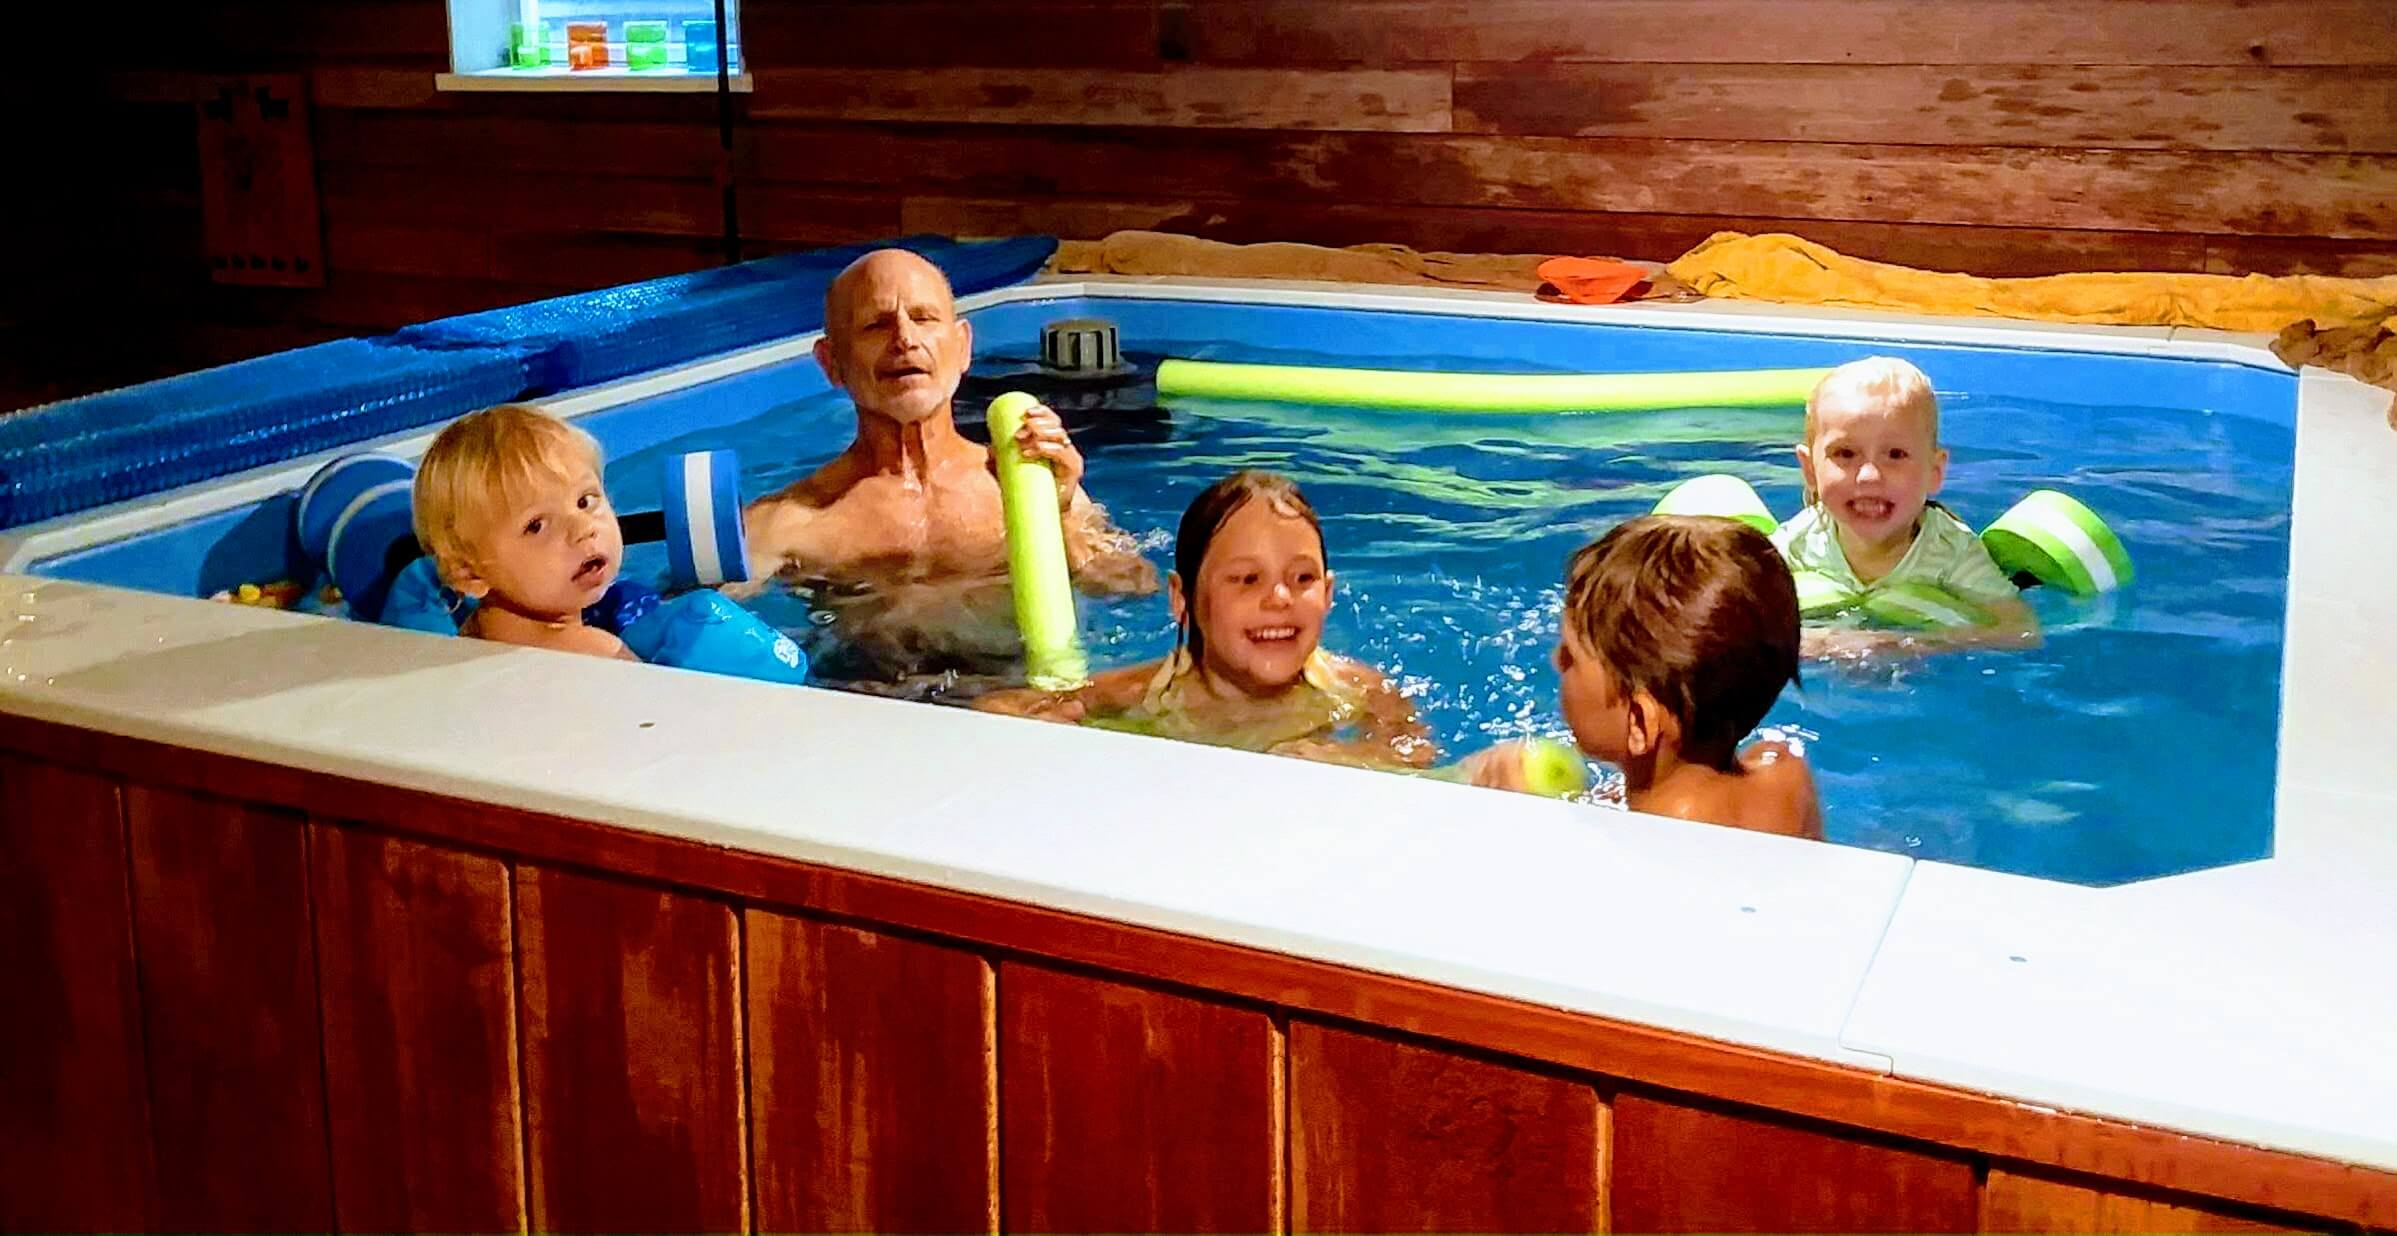 Joan's husband and their grandkids enjoy playtime in her Endless Pools WaterWell therapy pool